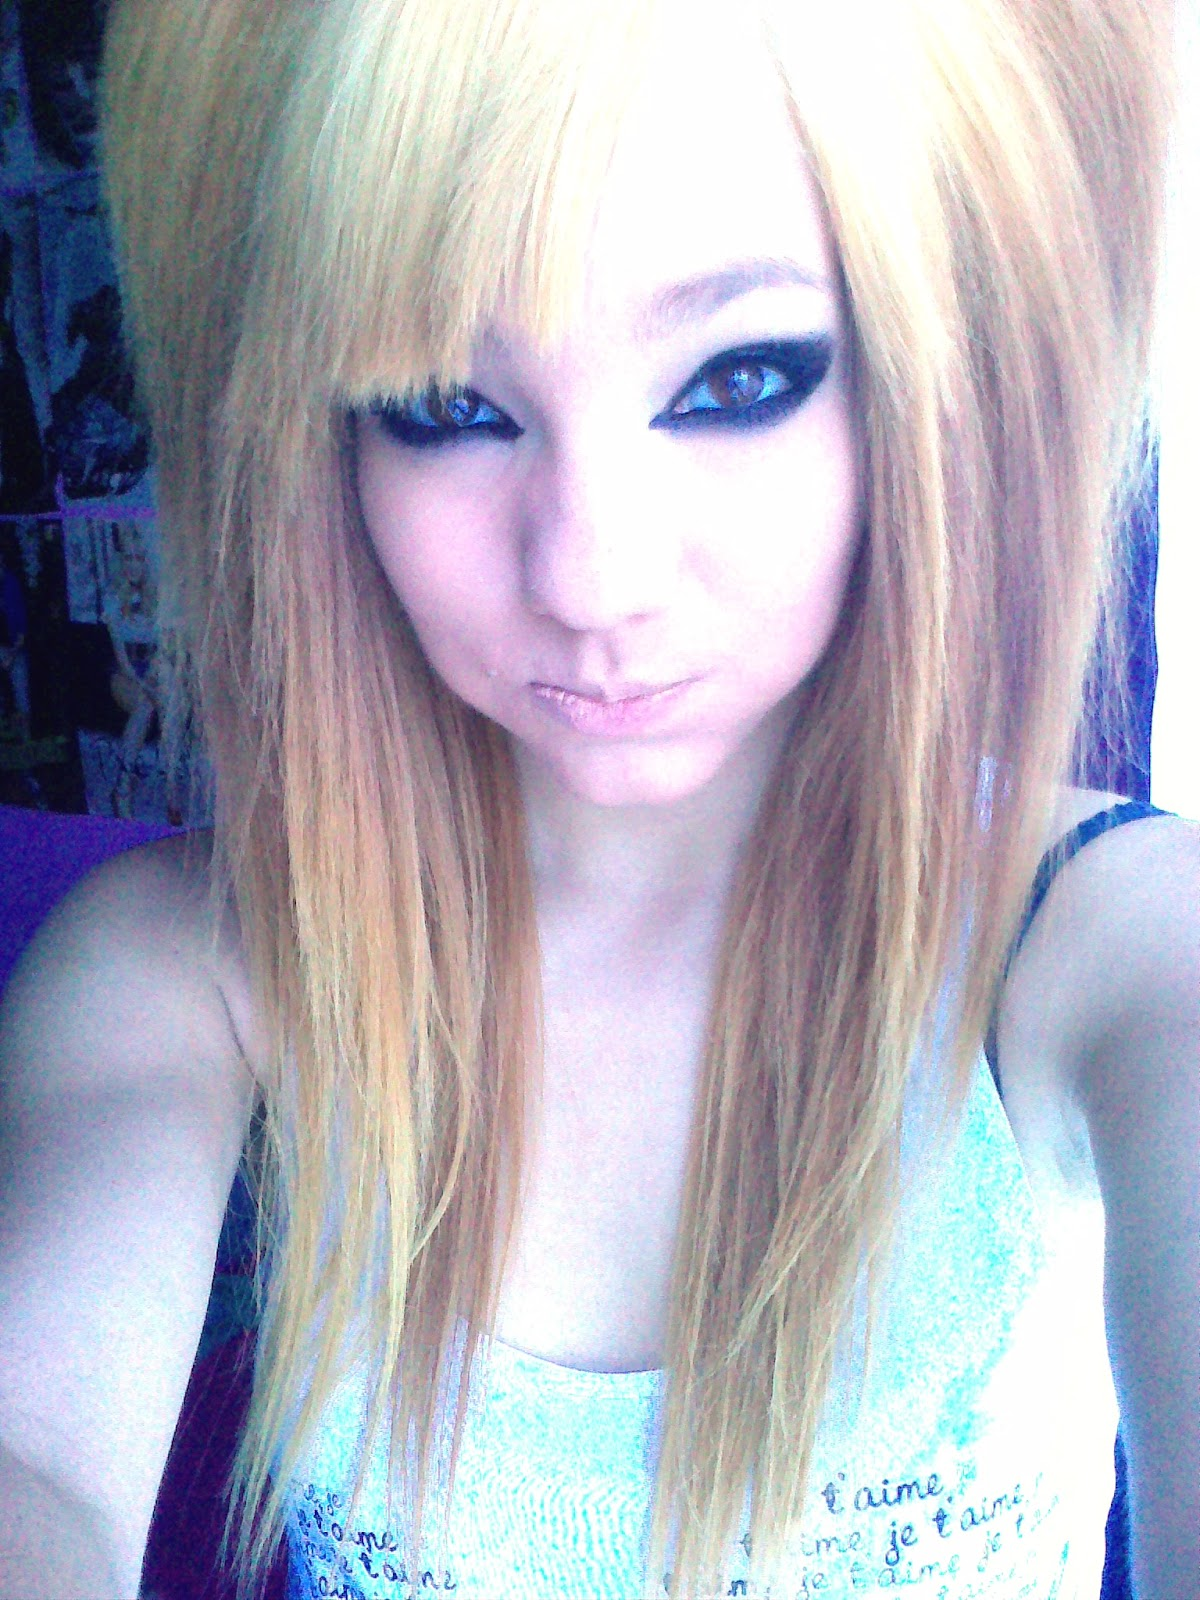 Emo Hairstyles For Girls Get an Edgy Hairstyle to Stand Out